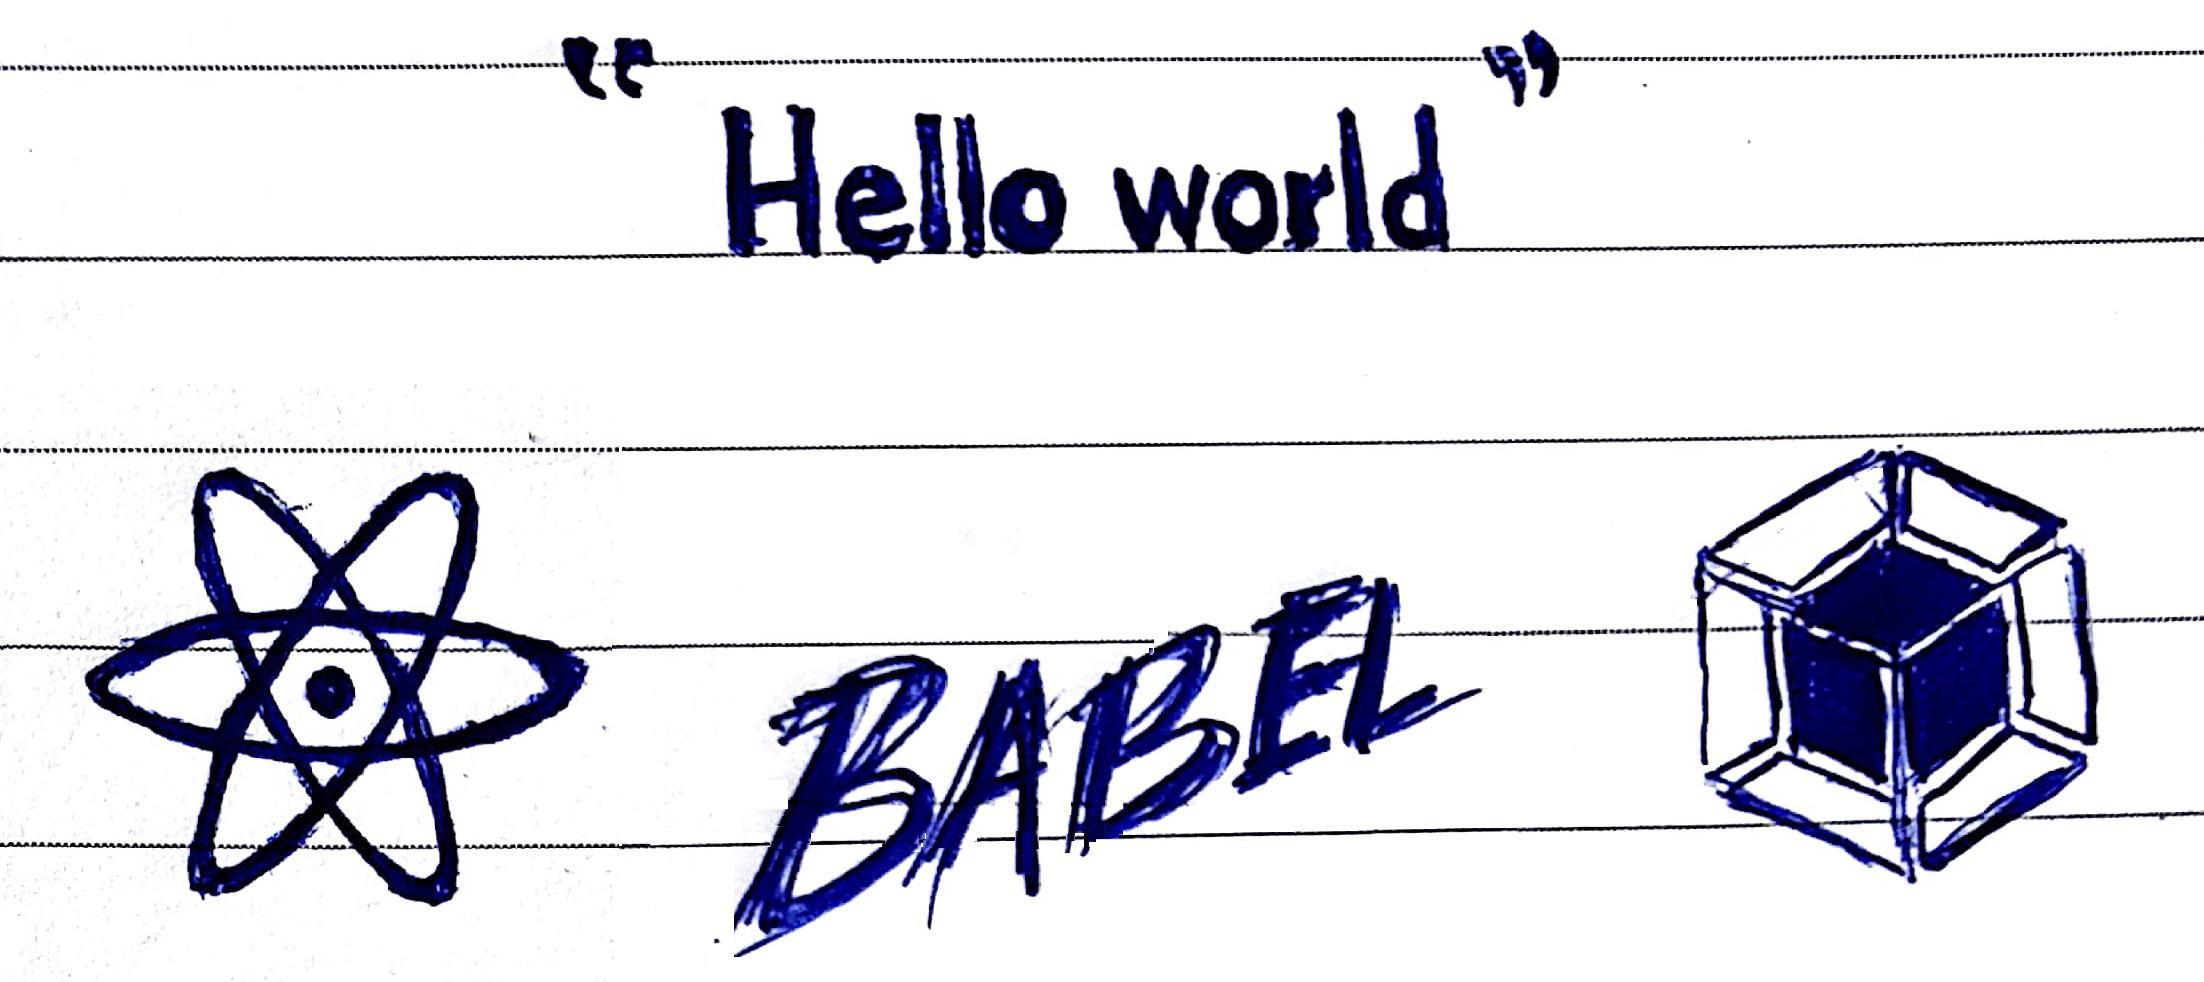 Getting started with REACT js, using Webpack and Babel